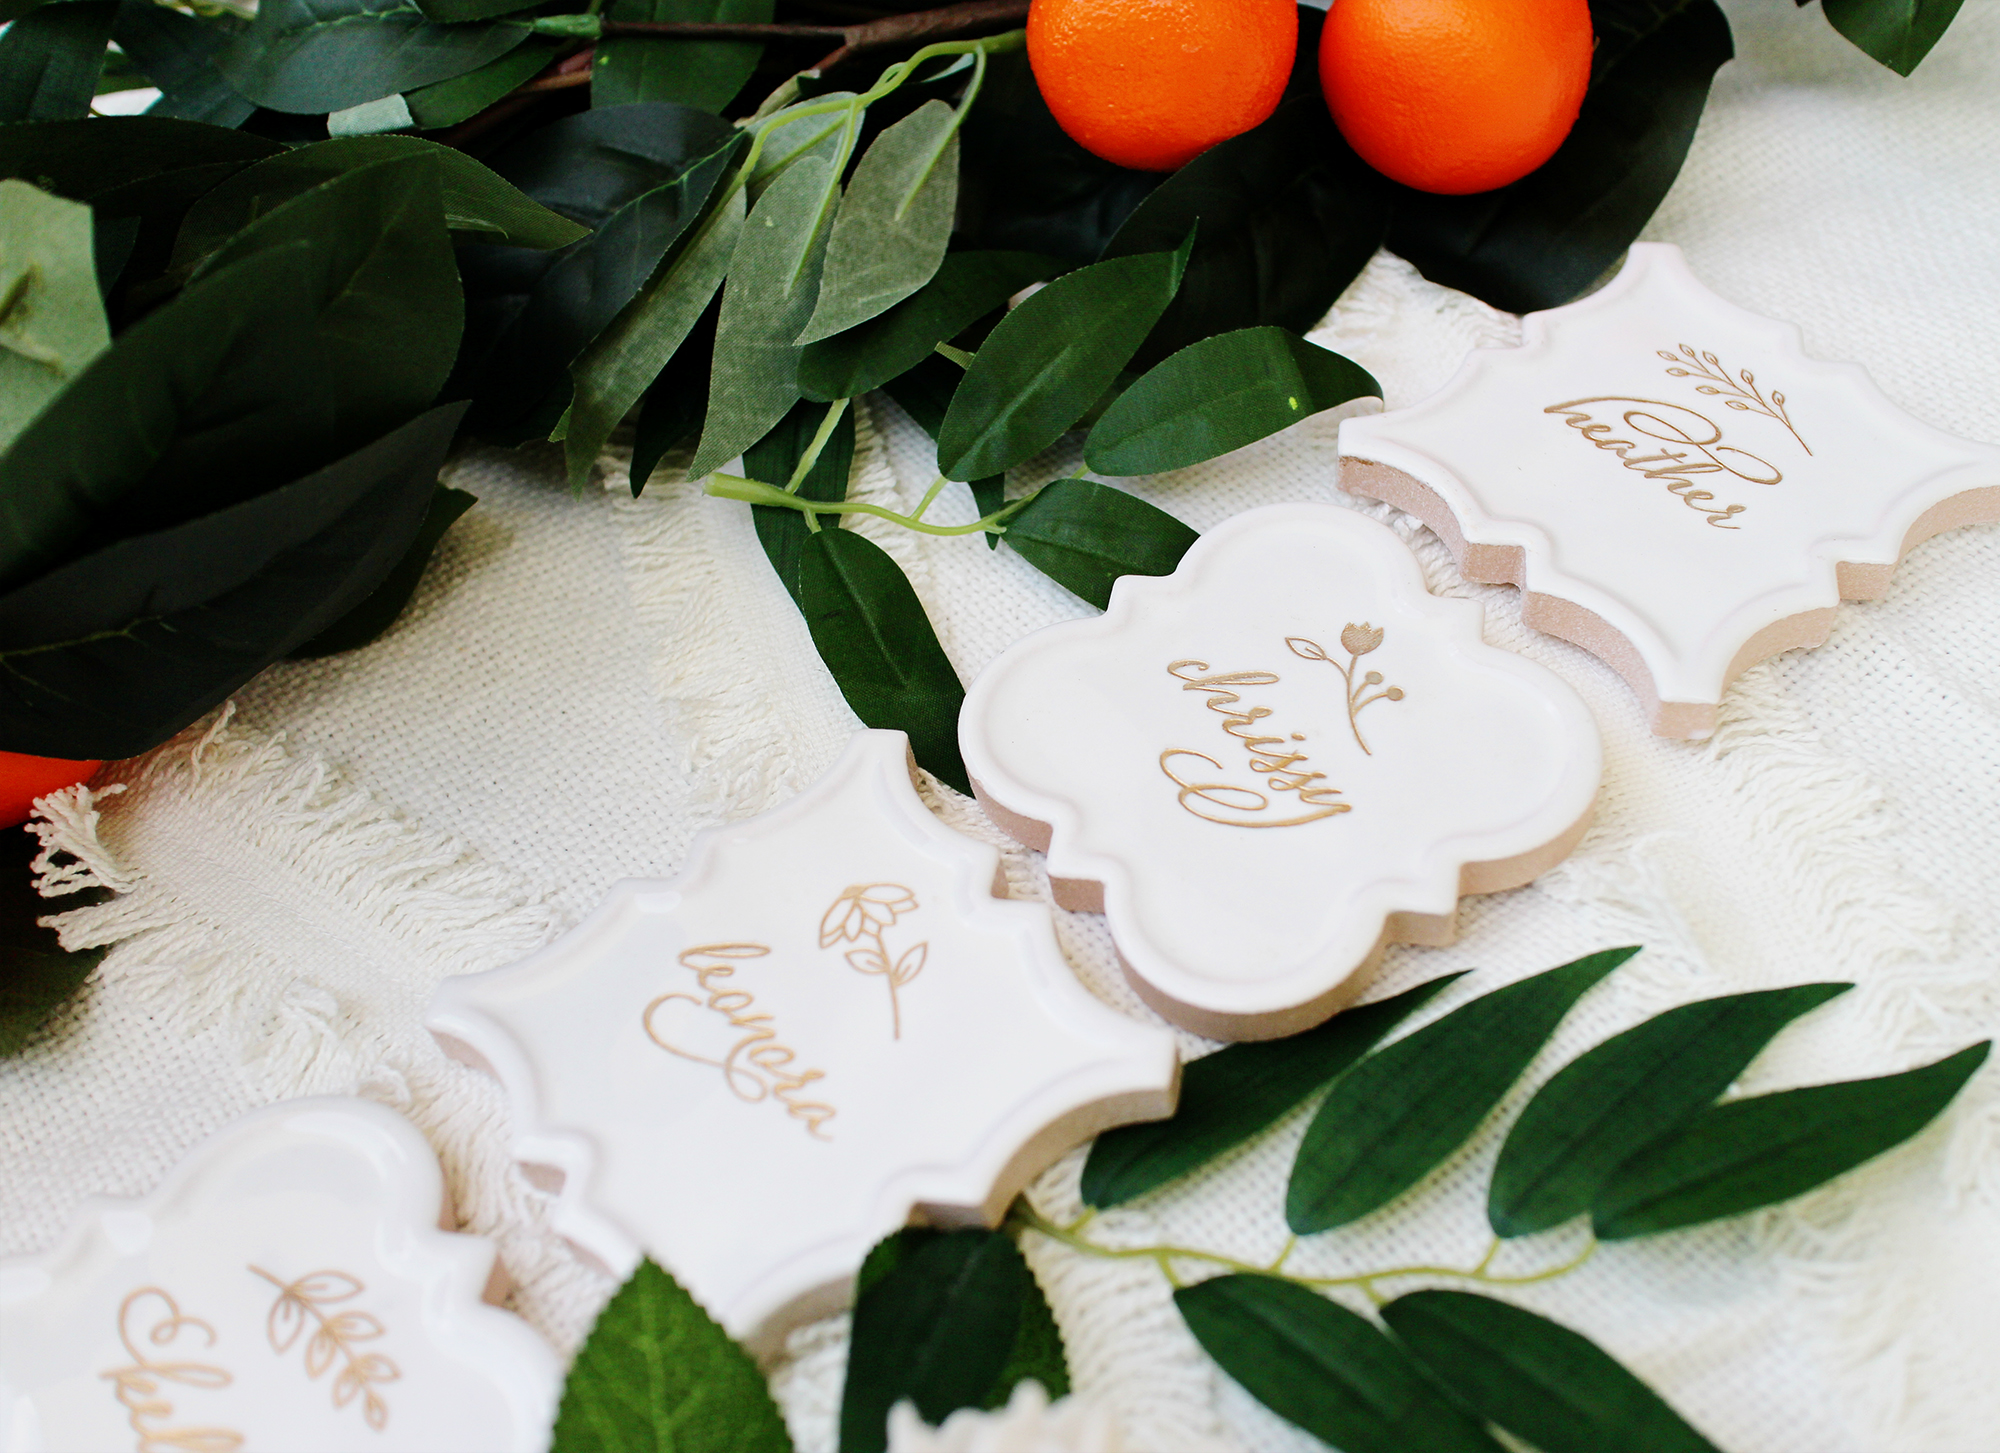 floral design beautiful moroccan tile name tags white and gold place card escort card seating chart boho wedding boho bridal shower yellow heart art etsy.jpg